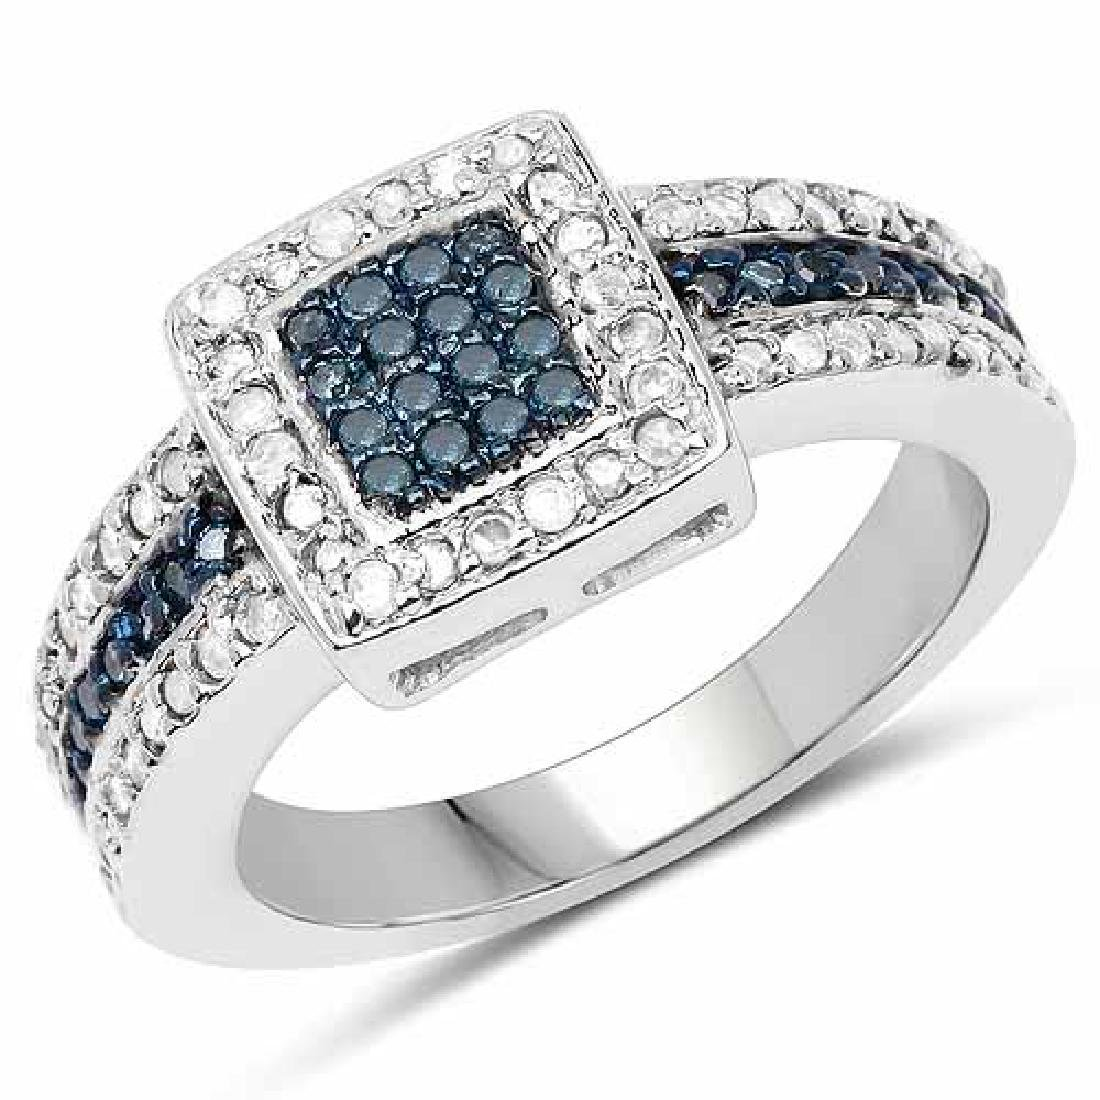 0.49 Carat Genuine Blue Diamond and White Diamond .925